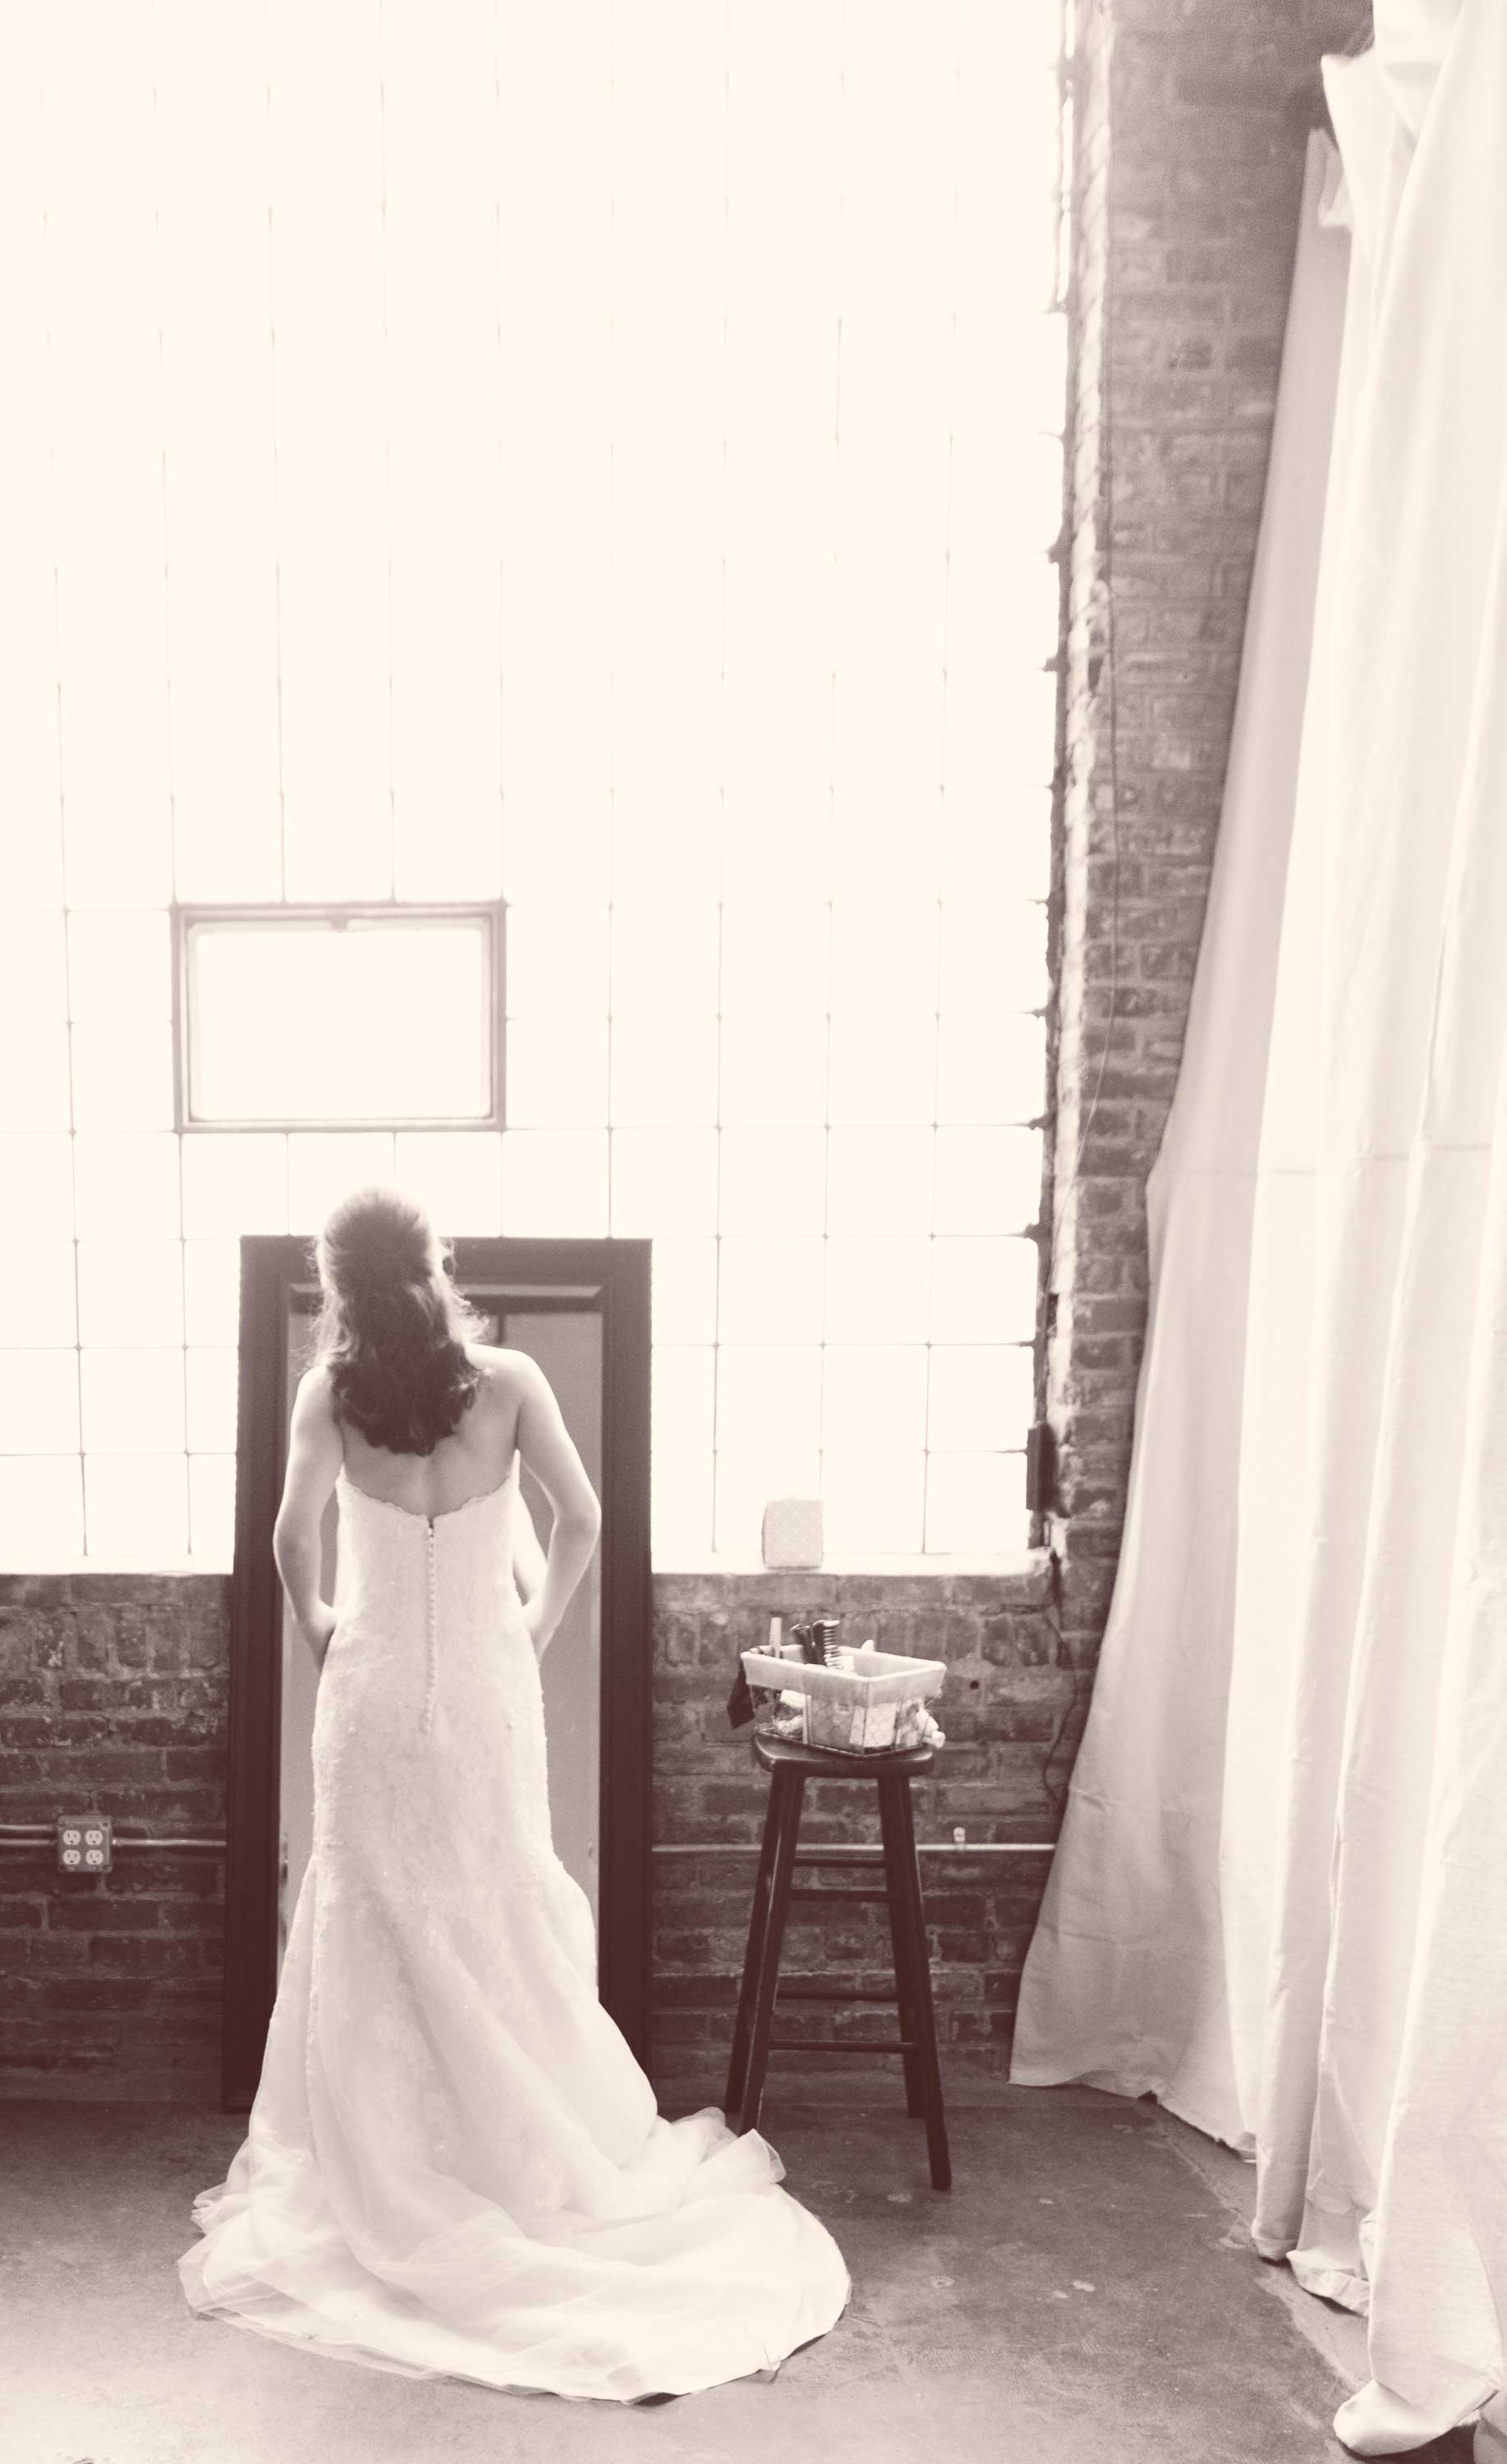 5. A QUIET MOMENT OF AWE AS OUR BRIDE BEHOLDS HER IMAGE IN HER GOWN.